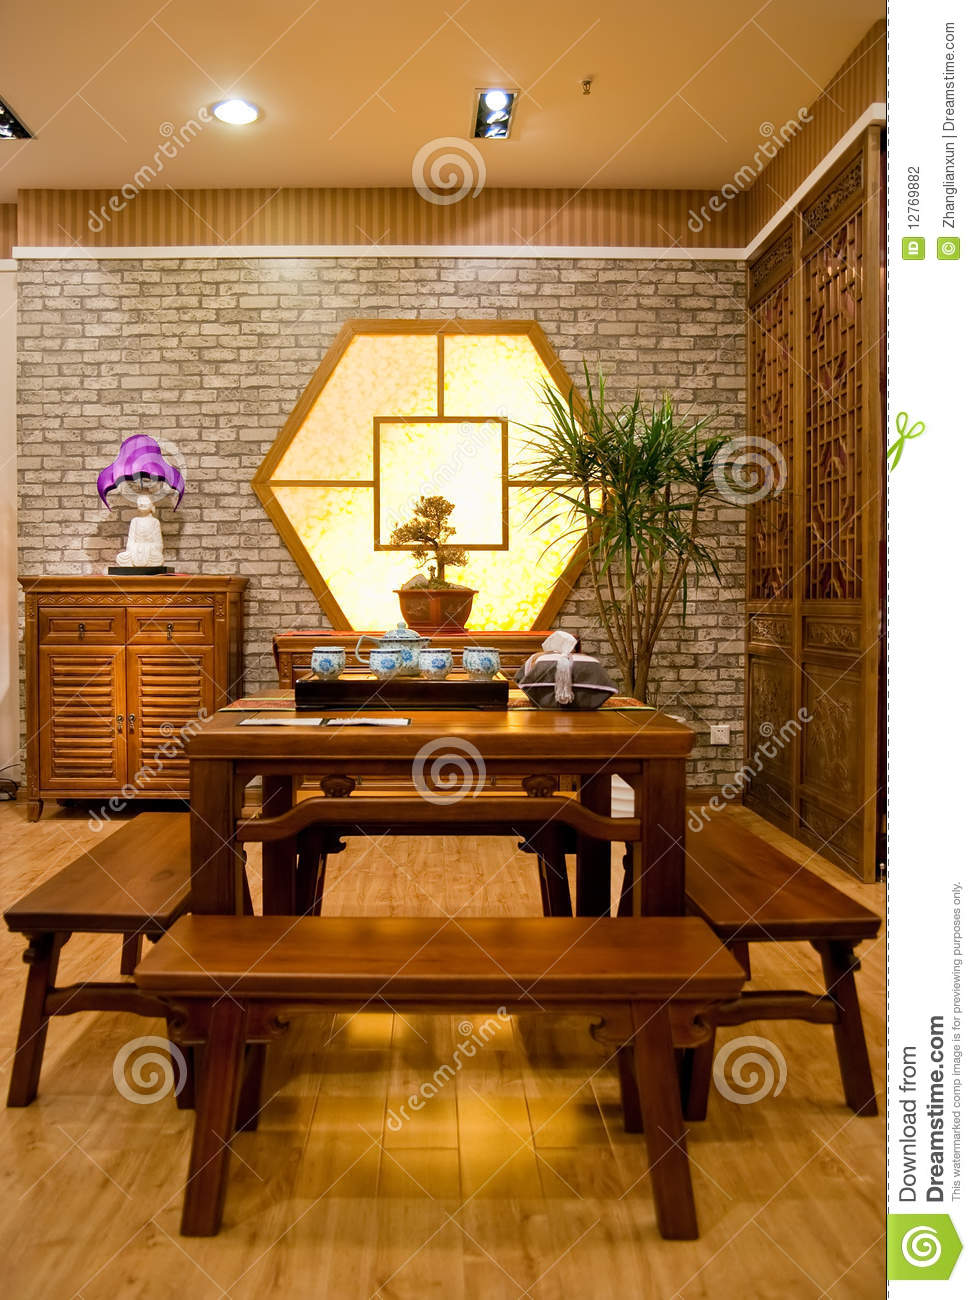 Chinese traditional furniture stock photography image for Chinese furniture traditional